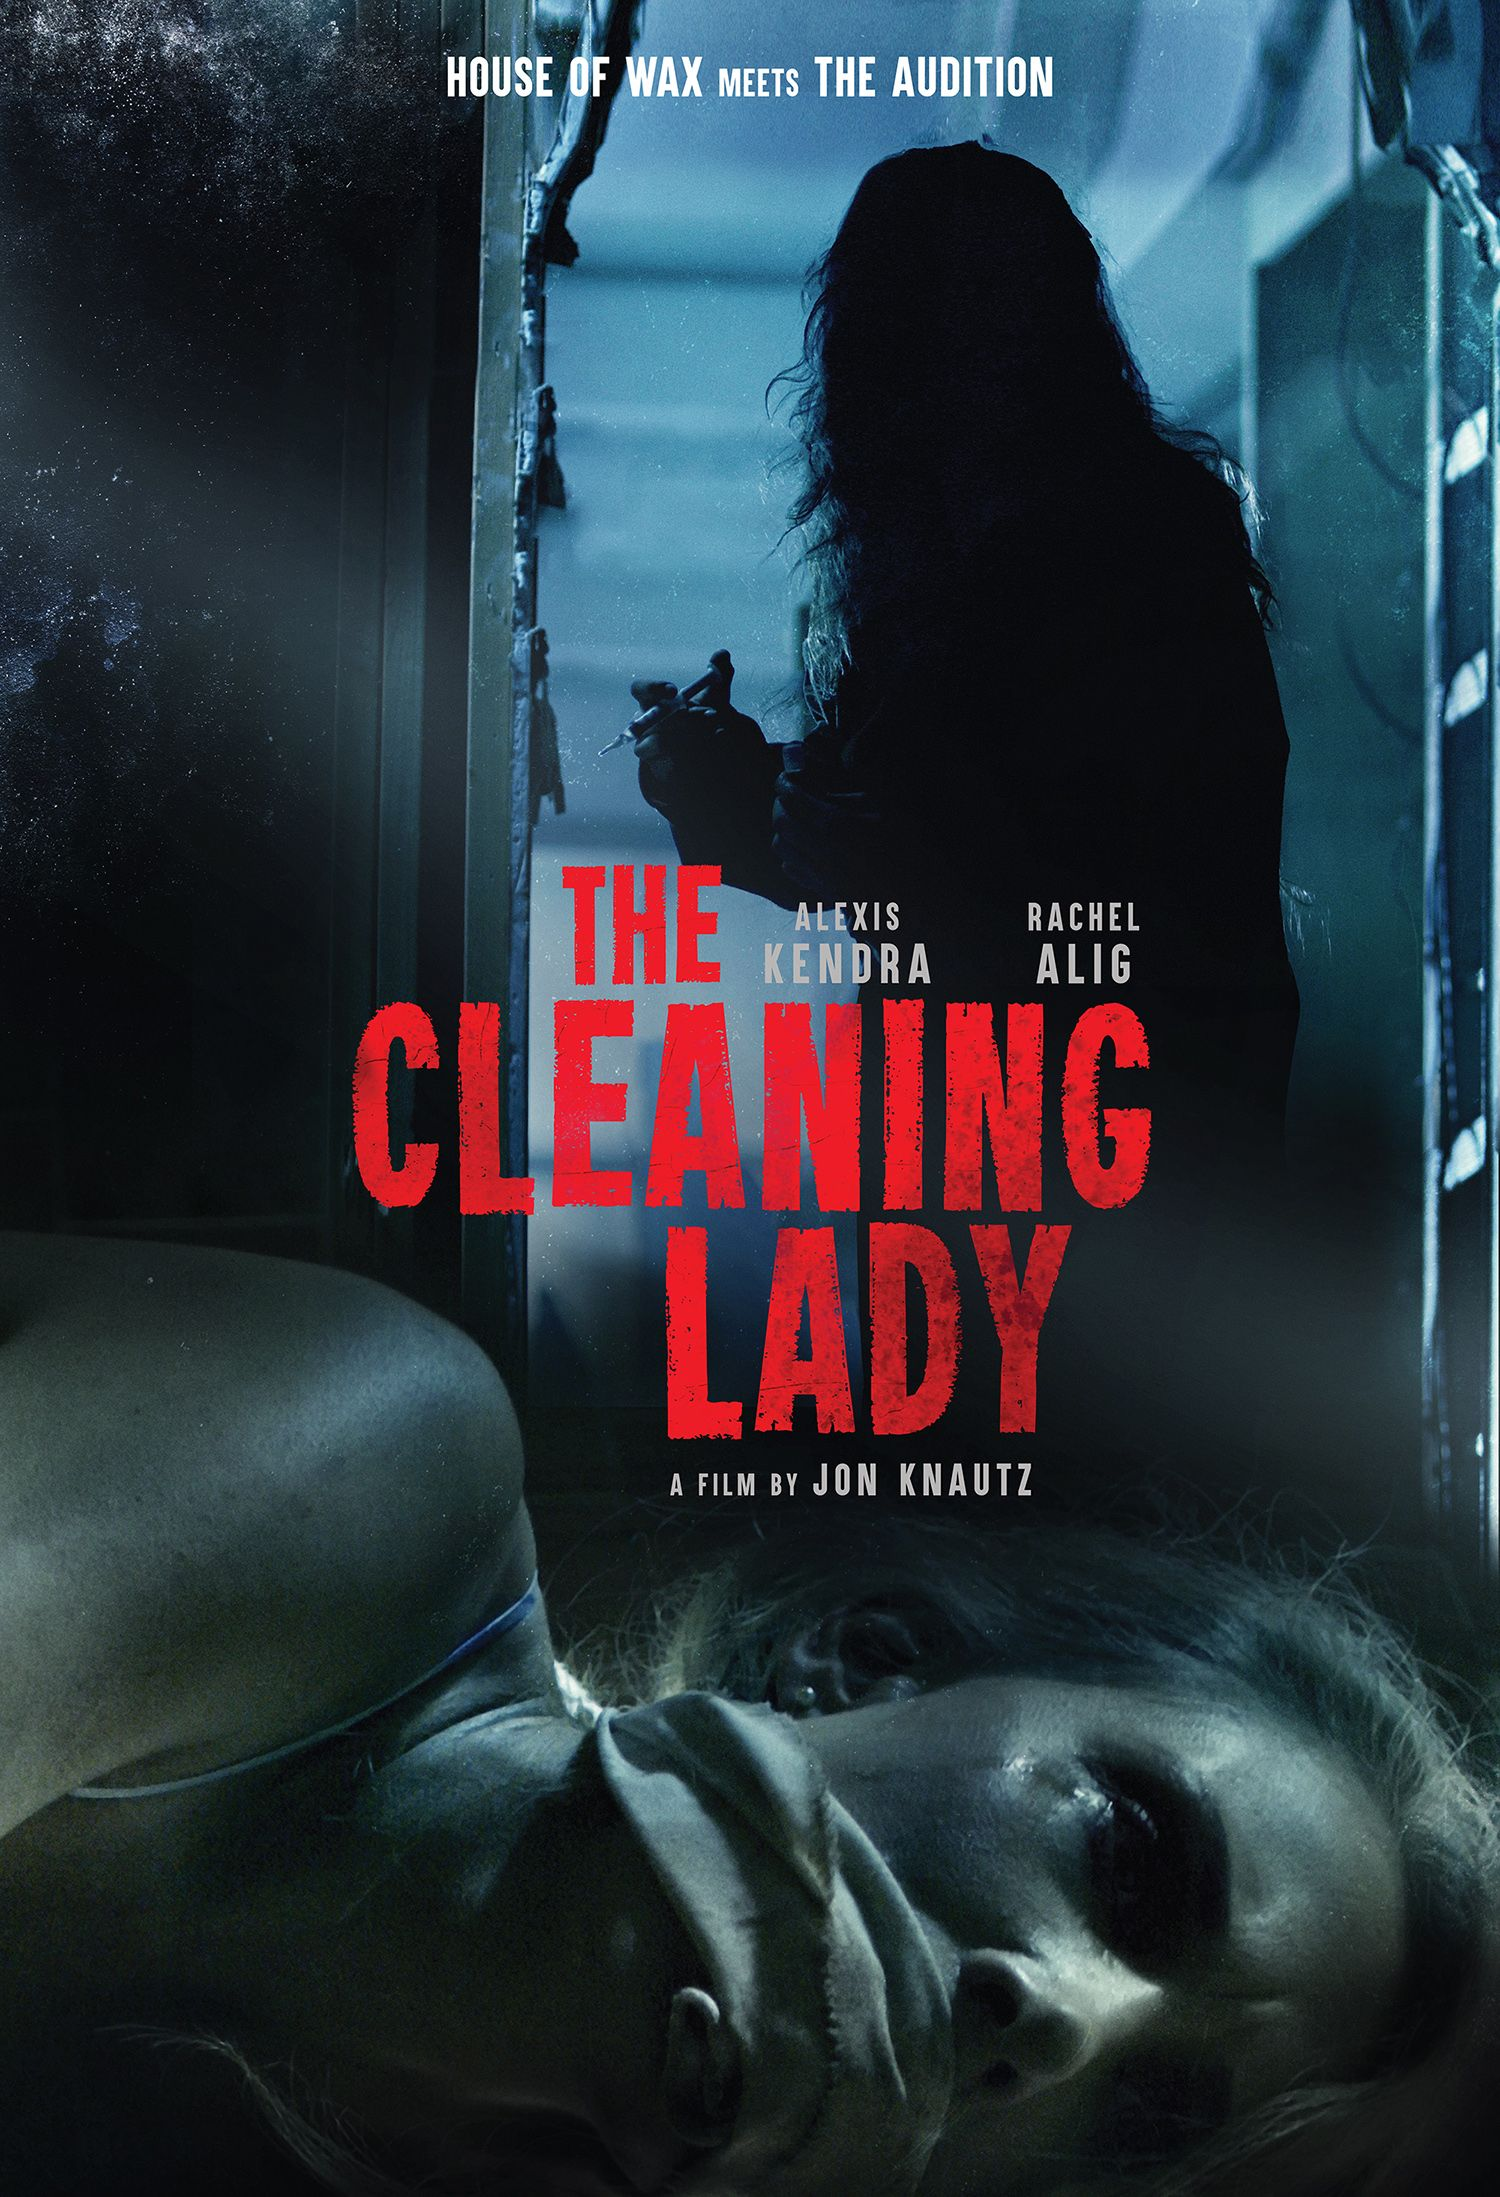 The Cleaning Lady Movie Trailer Https Teaser Trailer Com Movie The Cleaning Lady Thecleaning New Movies To Watch Indie Movie Posters Best Horror Movies